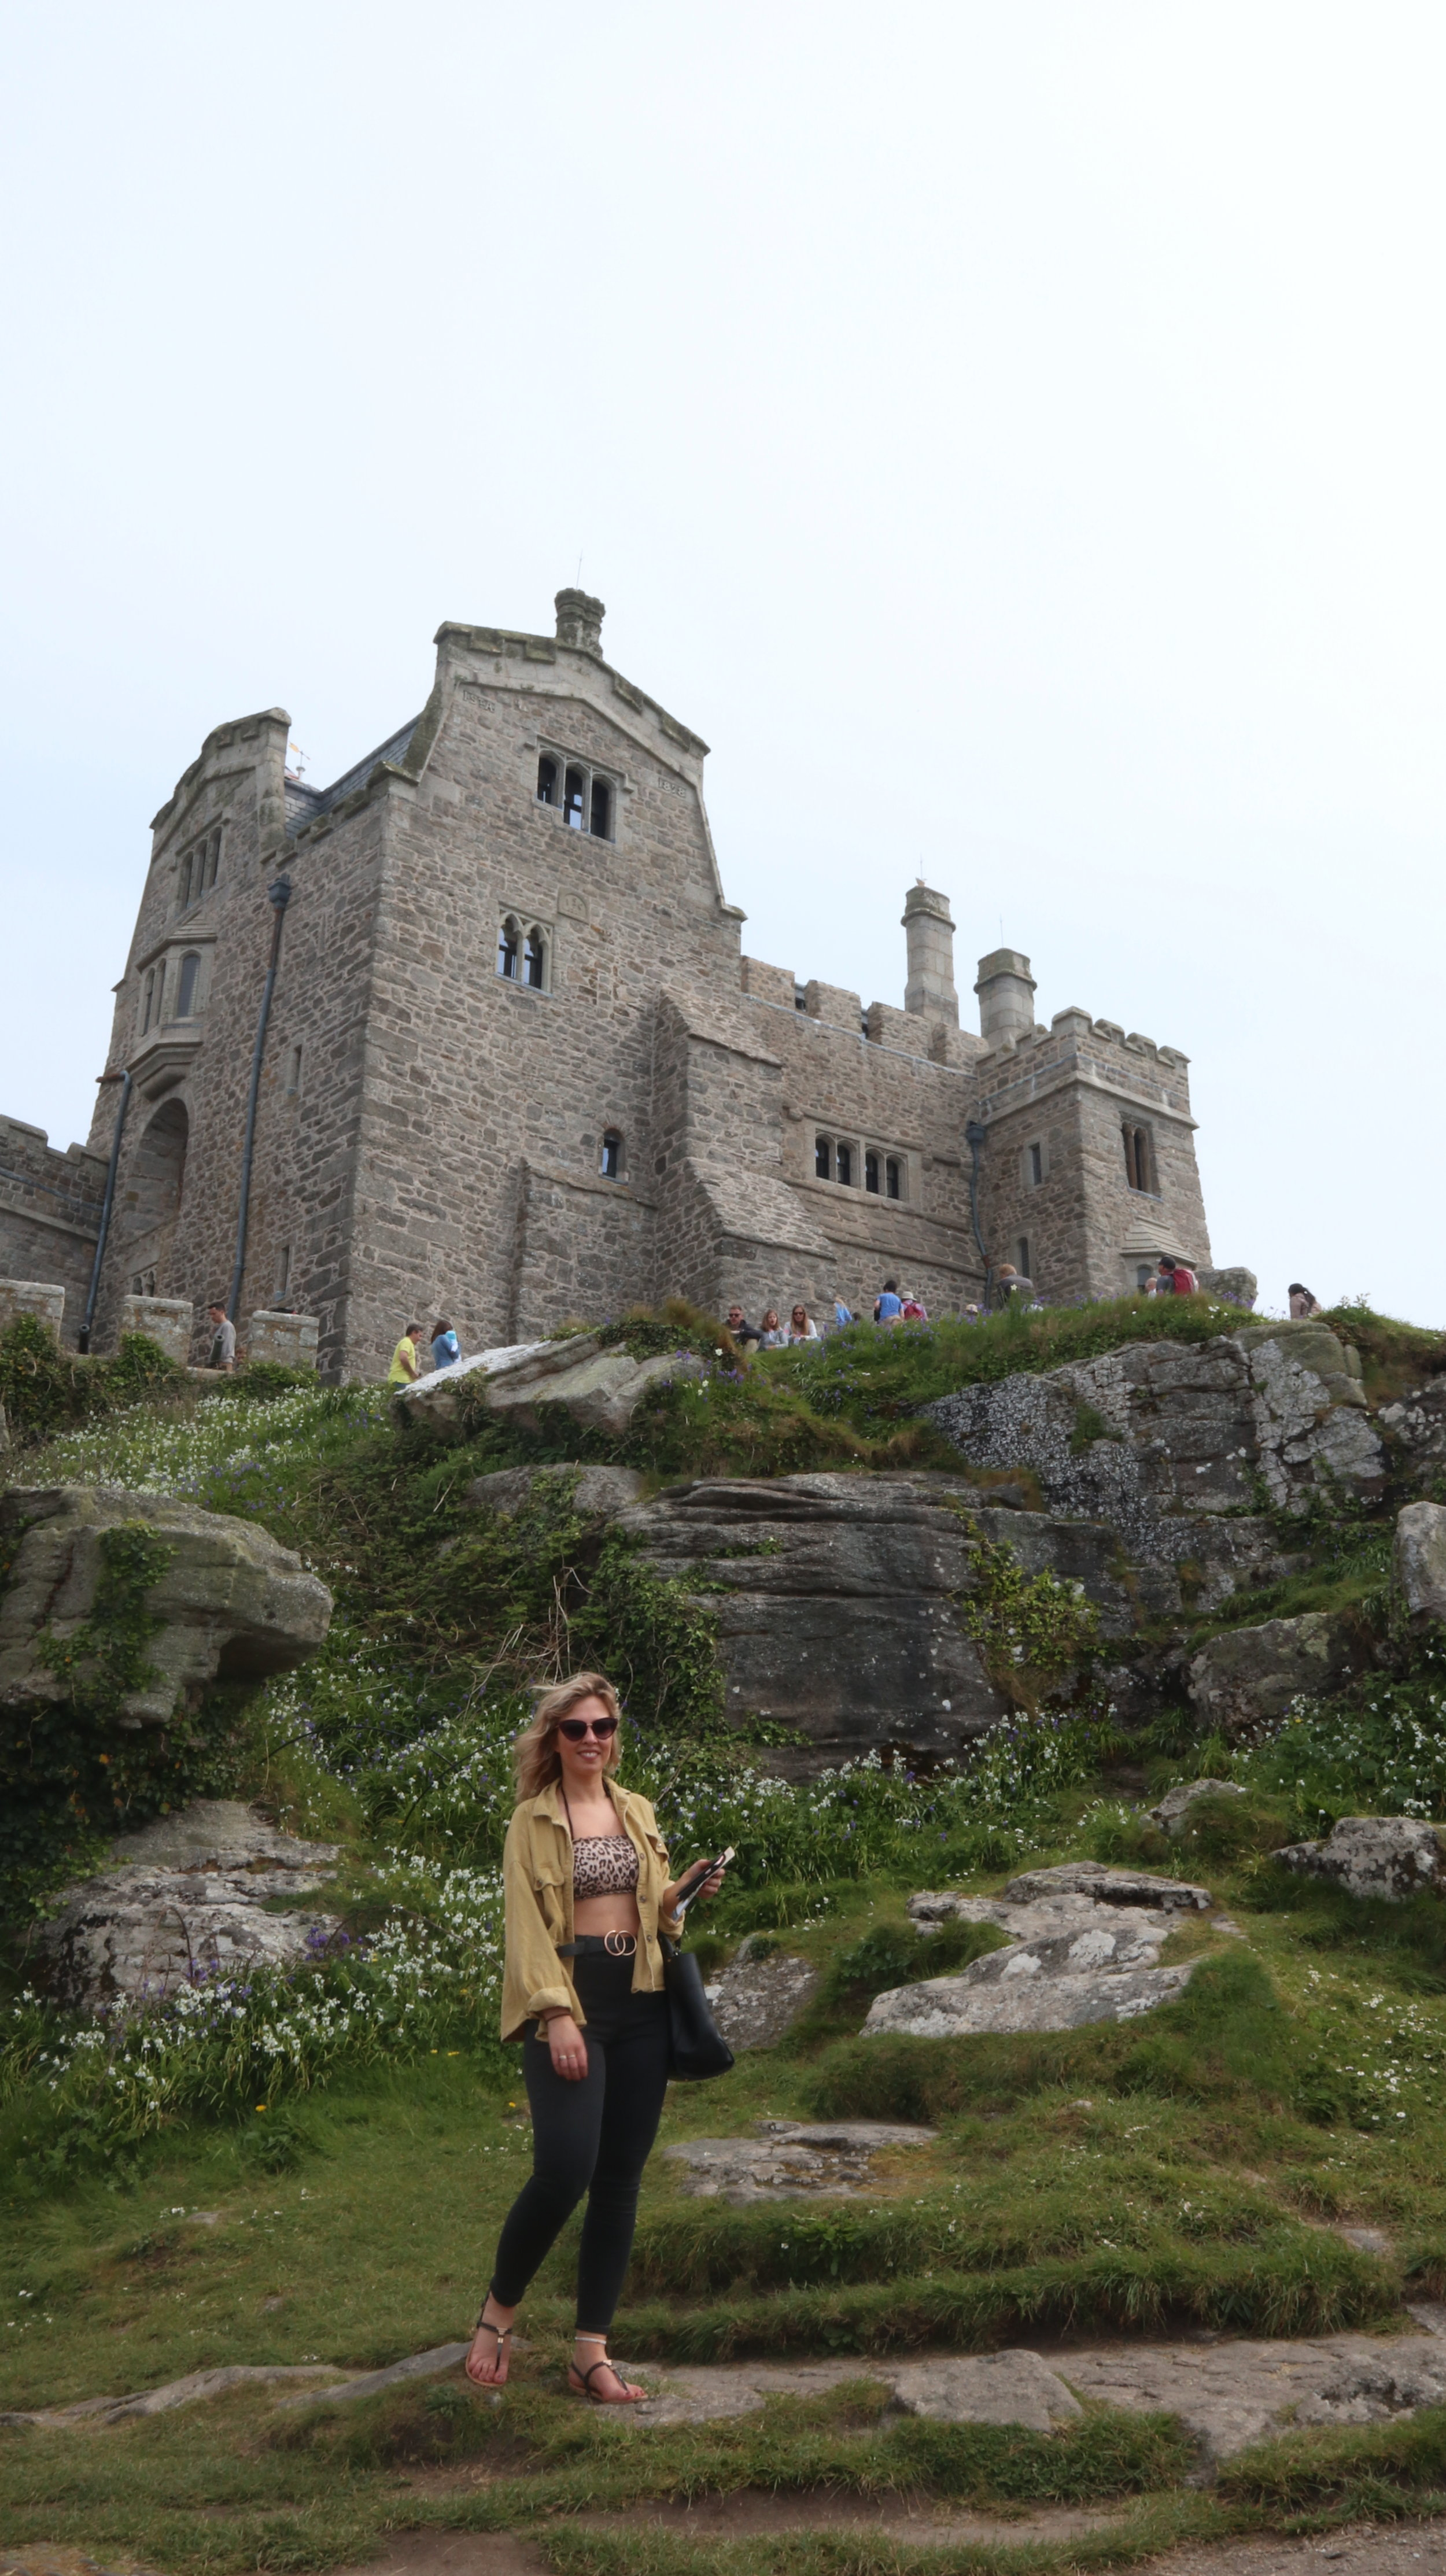 Top tips for a trip to St Michael's Mount in Cornwall